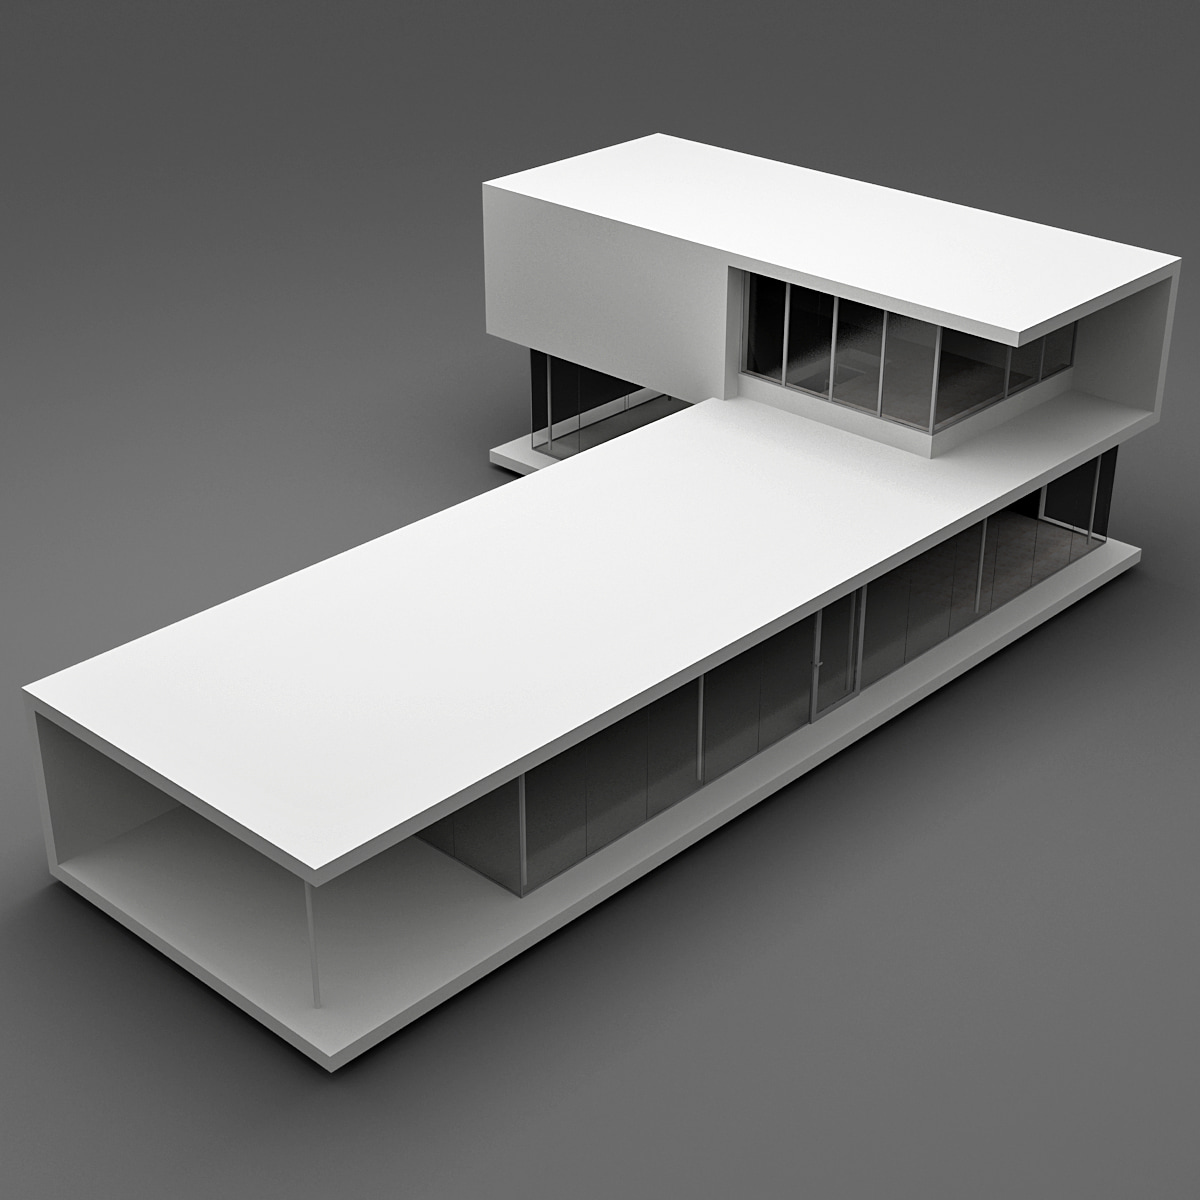 Searched 3d models for modern-house(1)-1 - ^